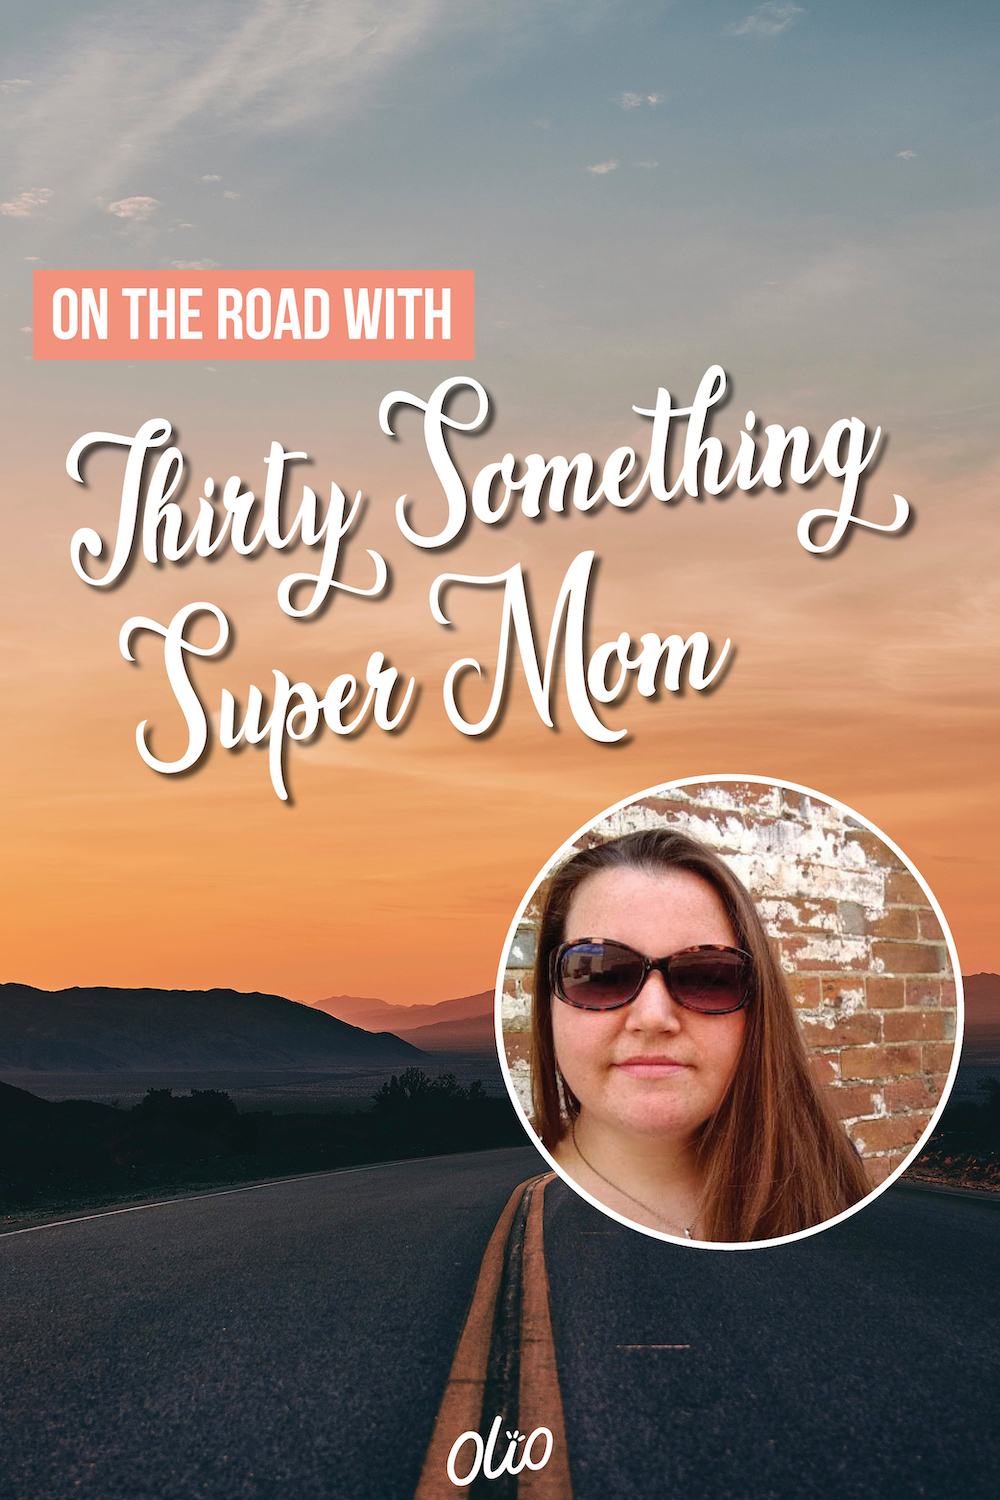 Not sure where to start when planning your next road trip? Blogger Melissa Dixon of Thirty Something Super Mom has travel hacks and road trip tips for every kind of traveler. Learn how Melissa plans a road trip, discover the best travel tips she's learned along the way, and get a peek at some of the content she shares on Thirty Something Super Mom.